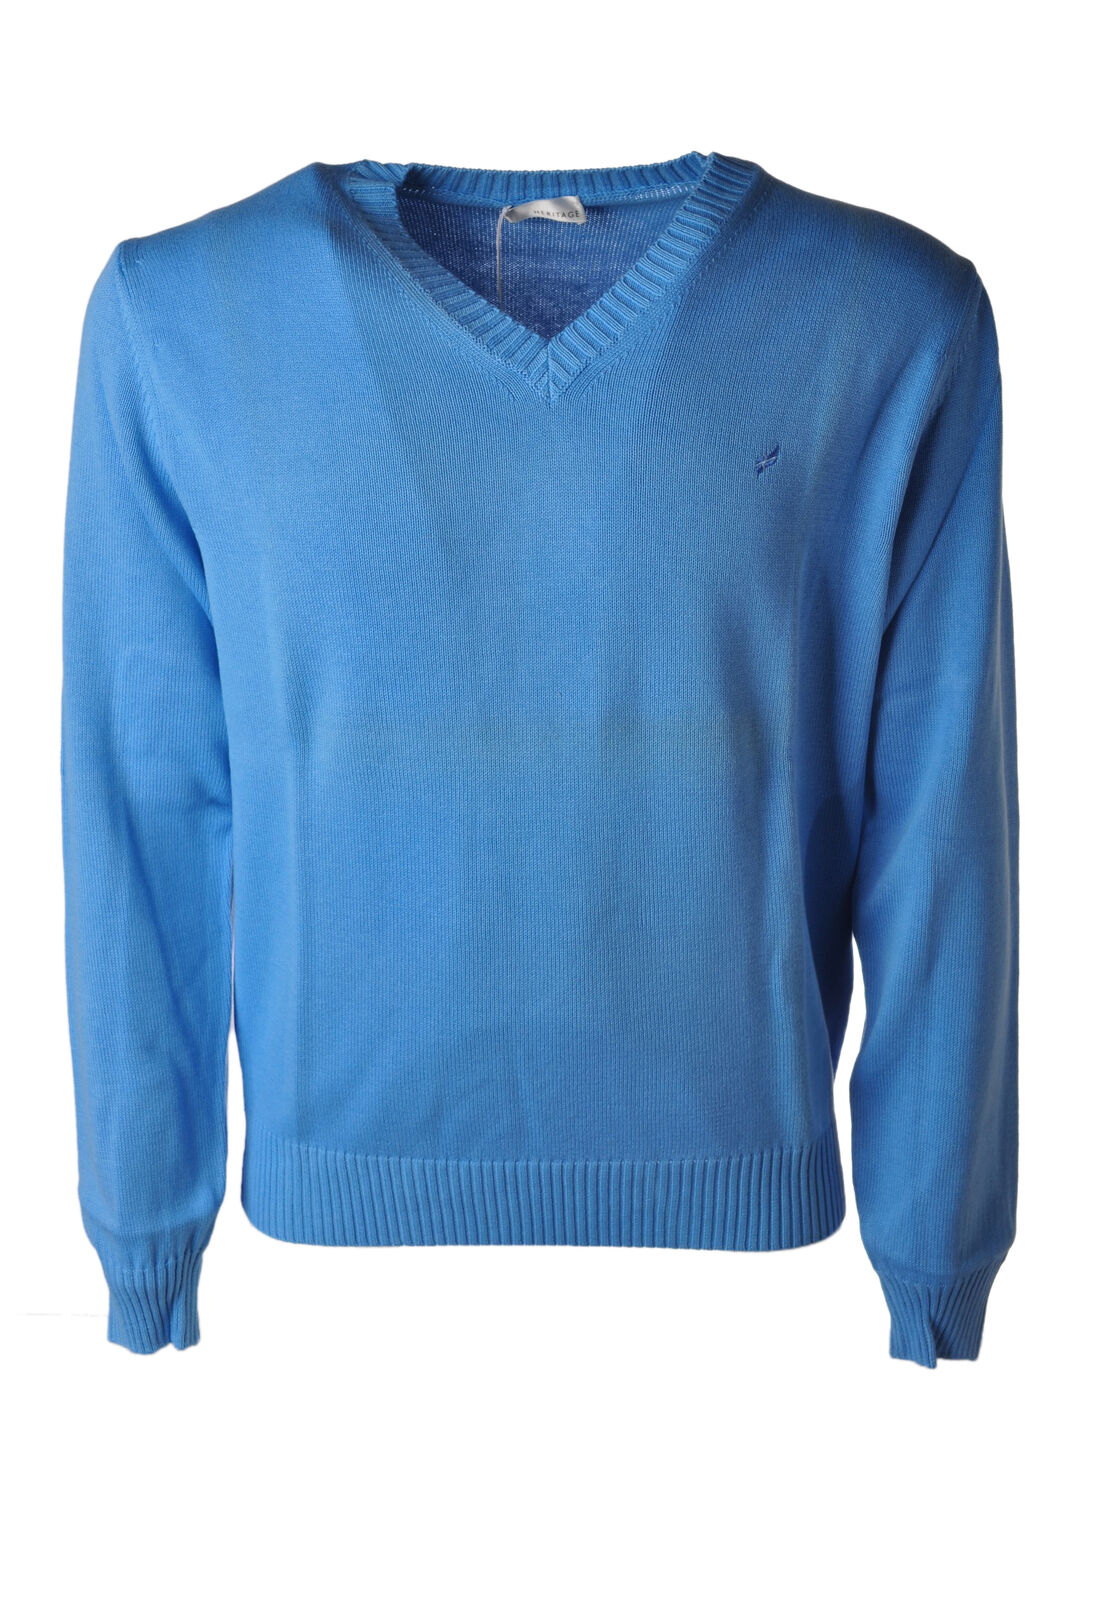 Heritage  -  Sweaters - Male - bluee - 4643321A185904